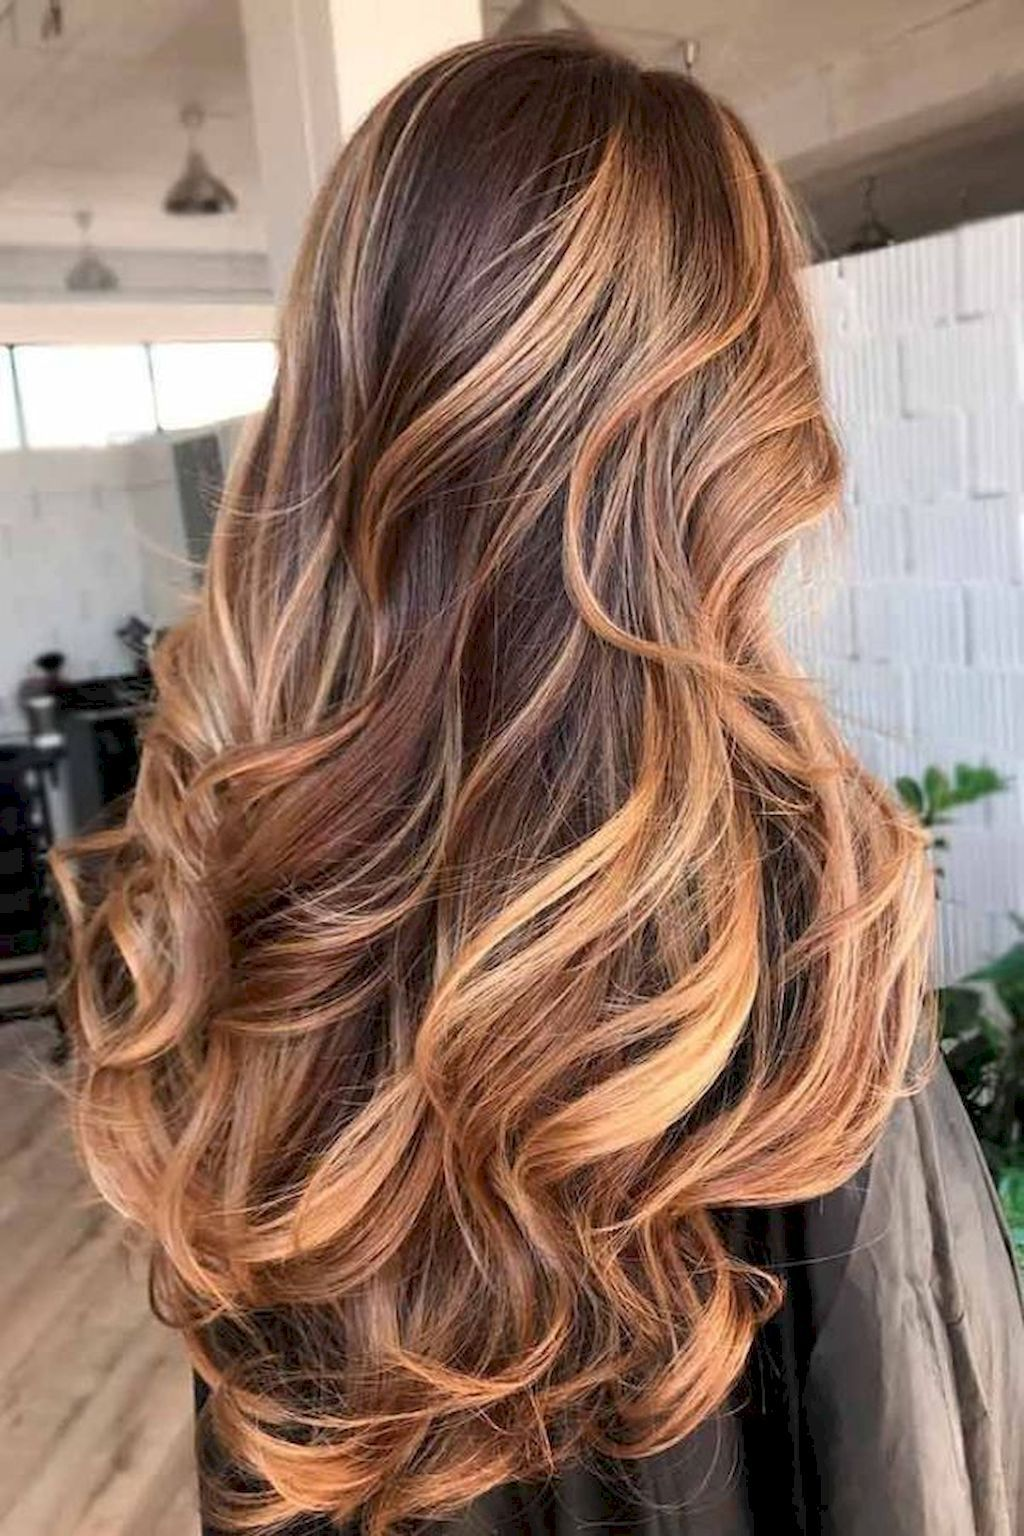 Cool 12 Cute Ideas To Spice Up Light Brown Hair #Brown #Cute #Hair